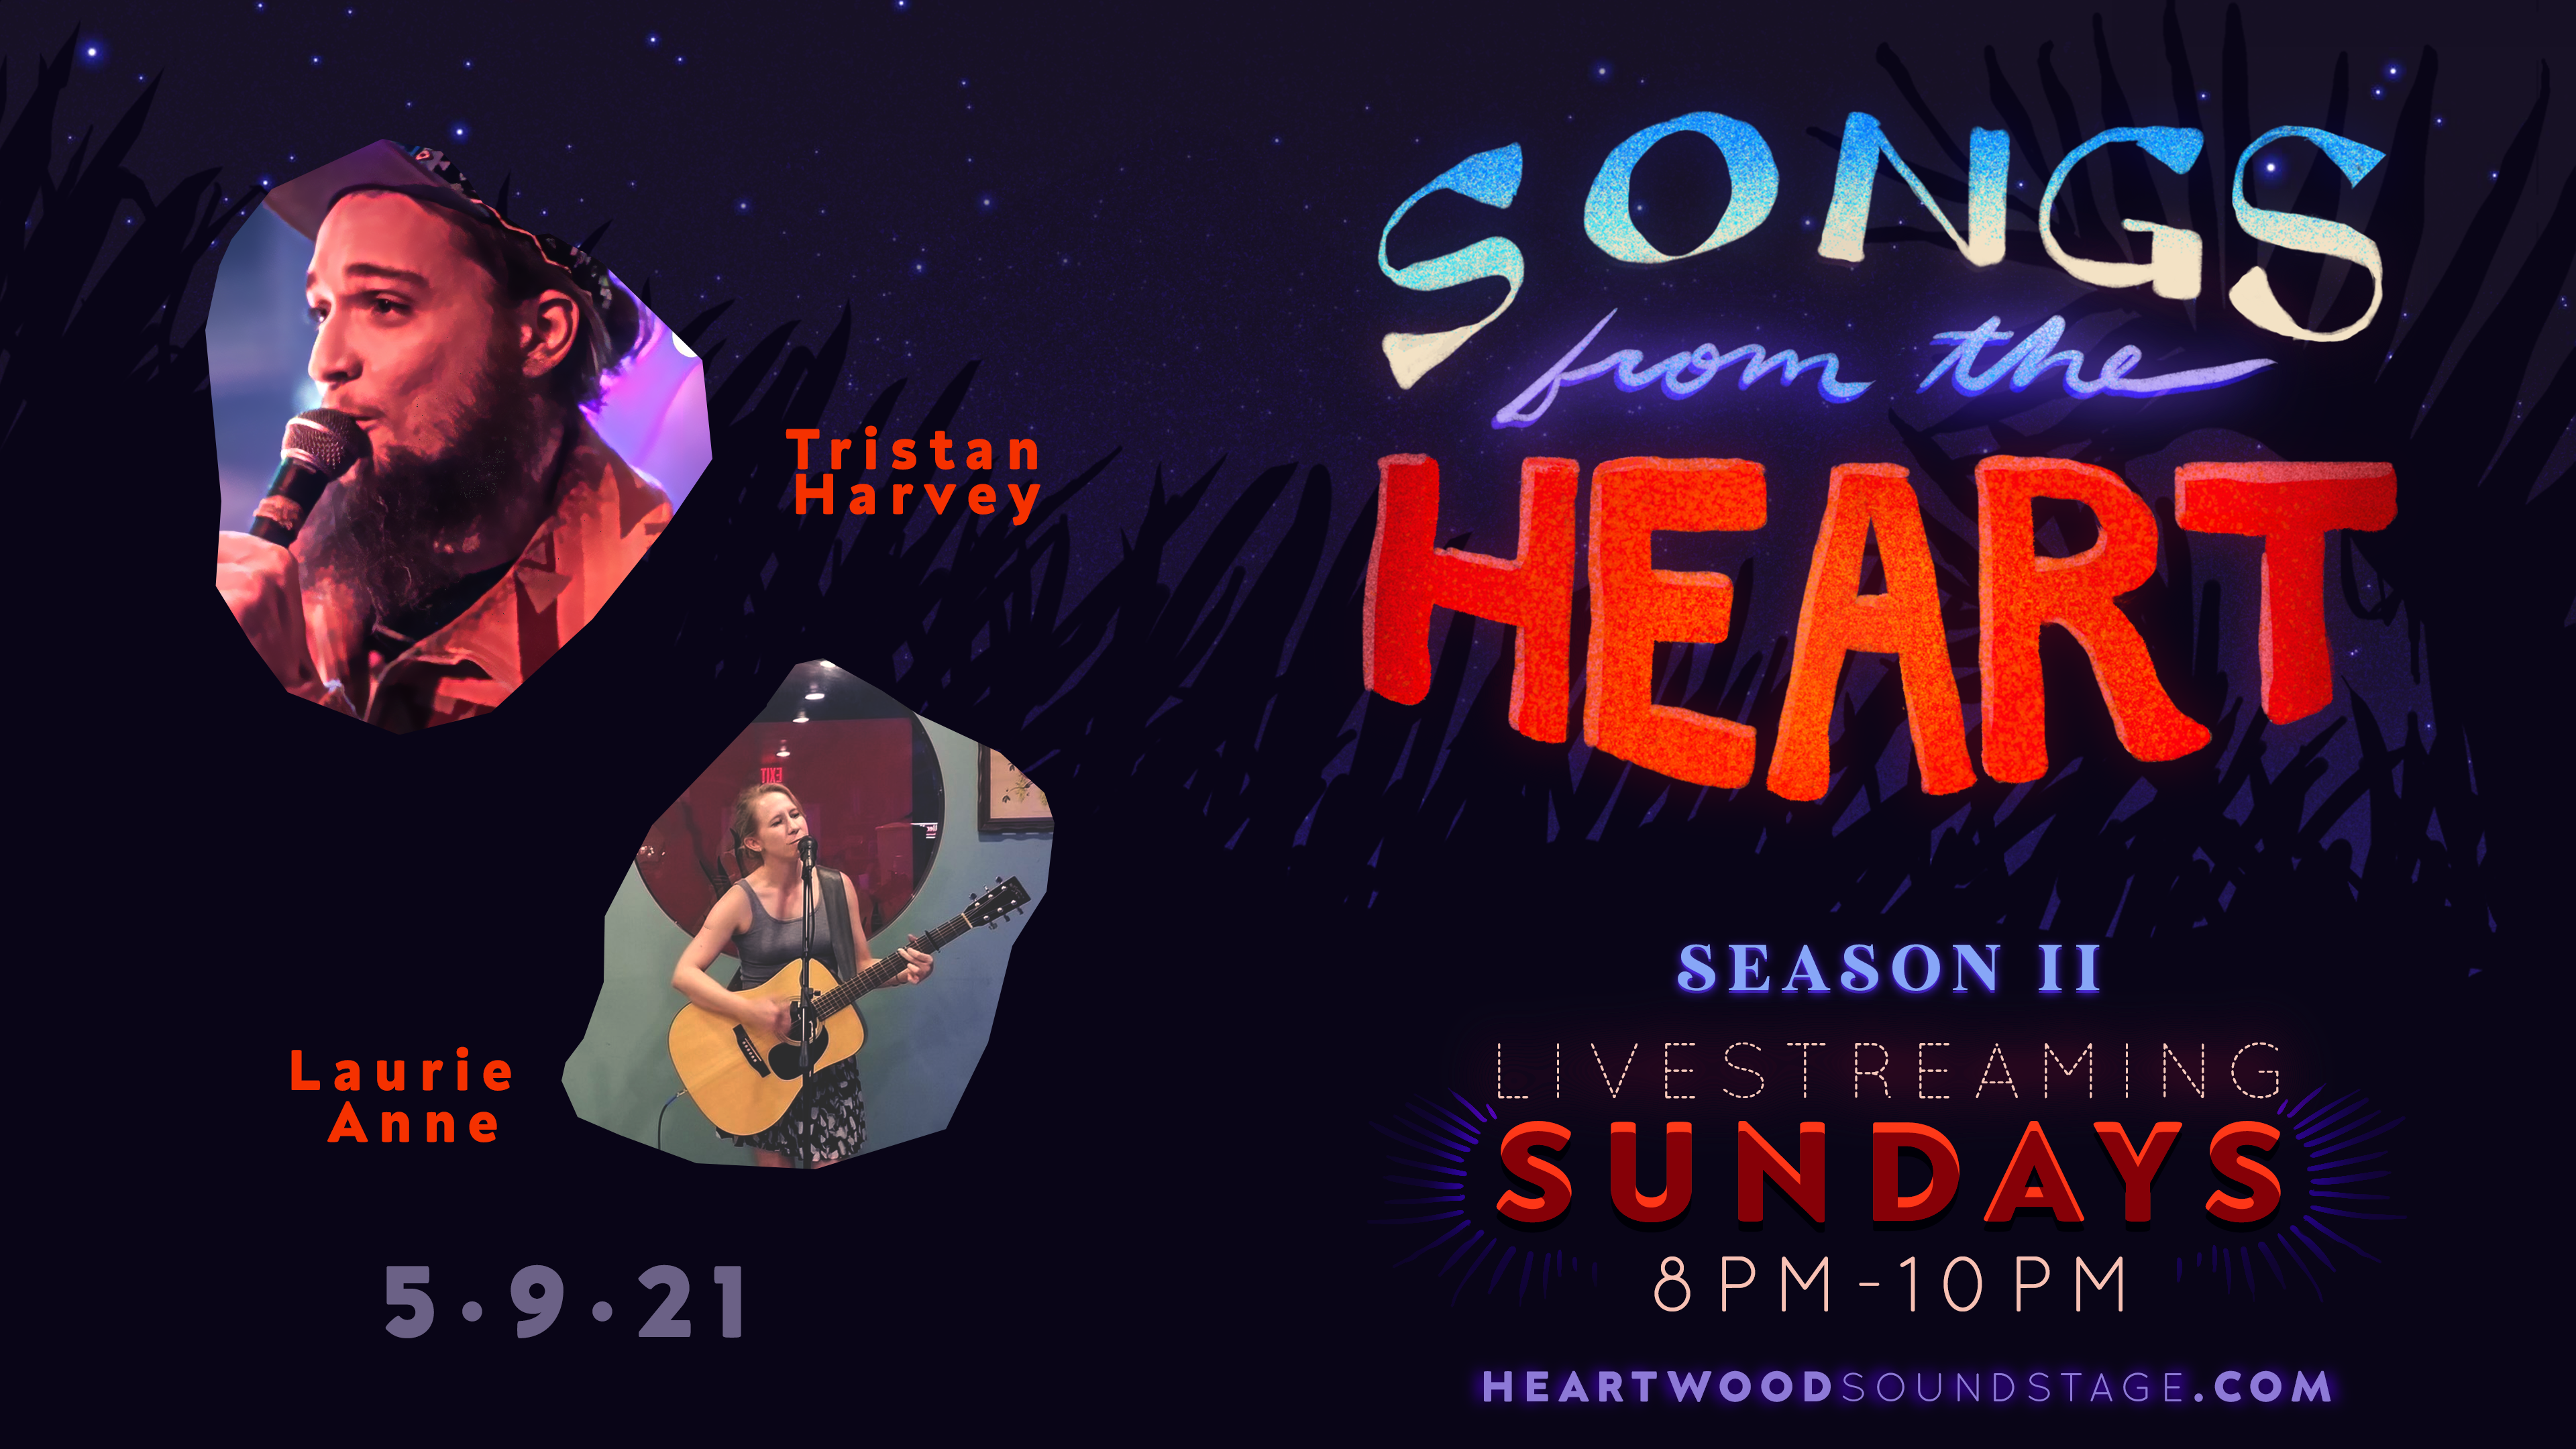 SONGS FROM THE HEART: SEASON 2. Livestreaming from Heartwood Soundstage. 2 portraits of the artists performing Episode 9: Tristan Harvey on the left and Laurie Anne on the right. Both names appear next to their photos